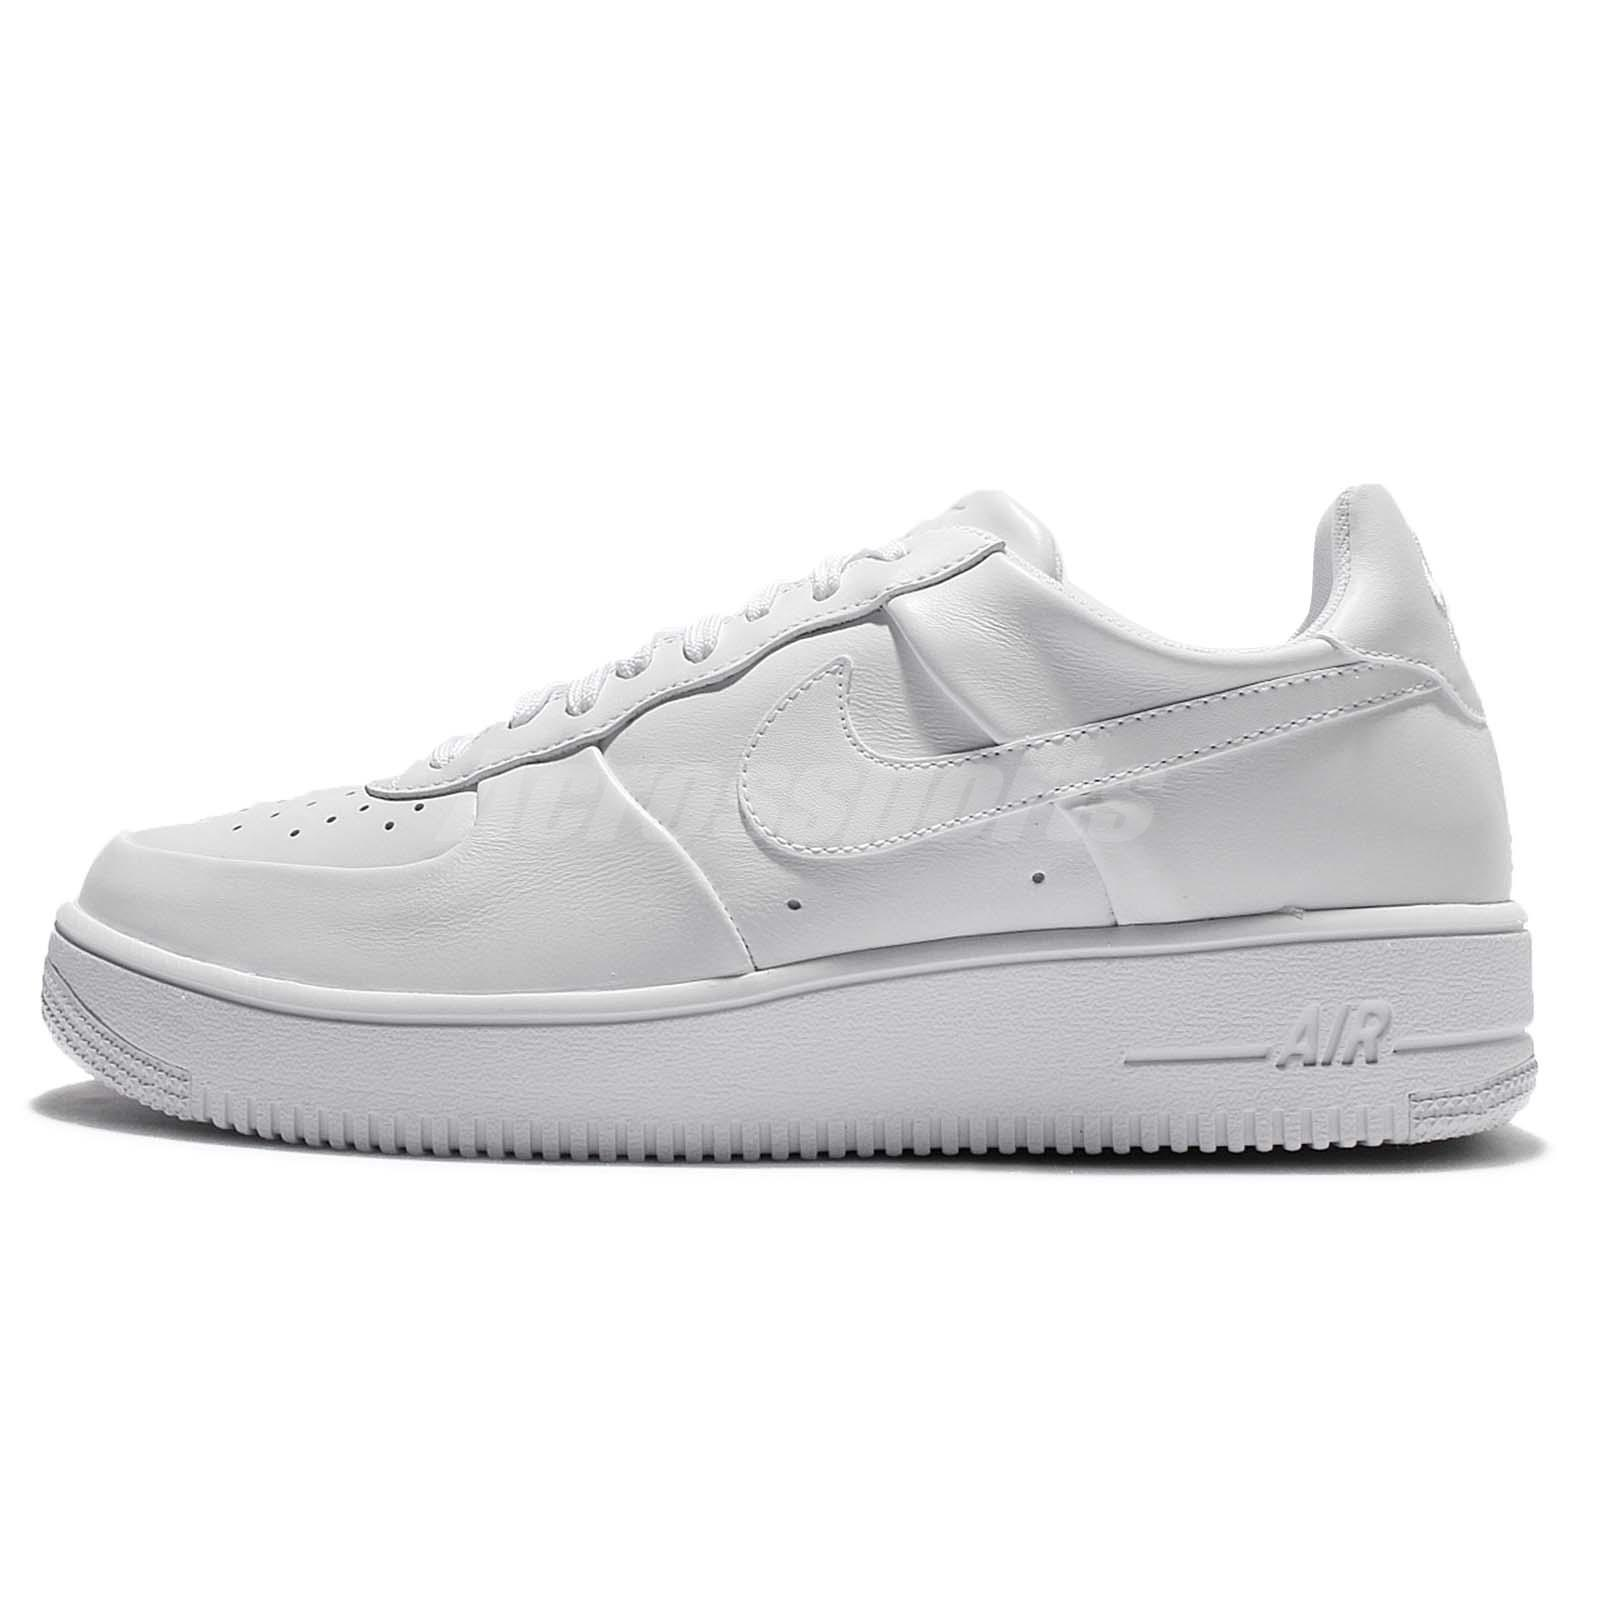 ... Nike Air Force 1 Ultraforce LTHR Leather Triple White Mens Casual AF1  845052-100 ... 22c0cbb0c